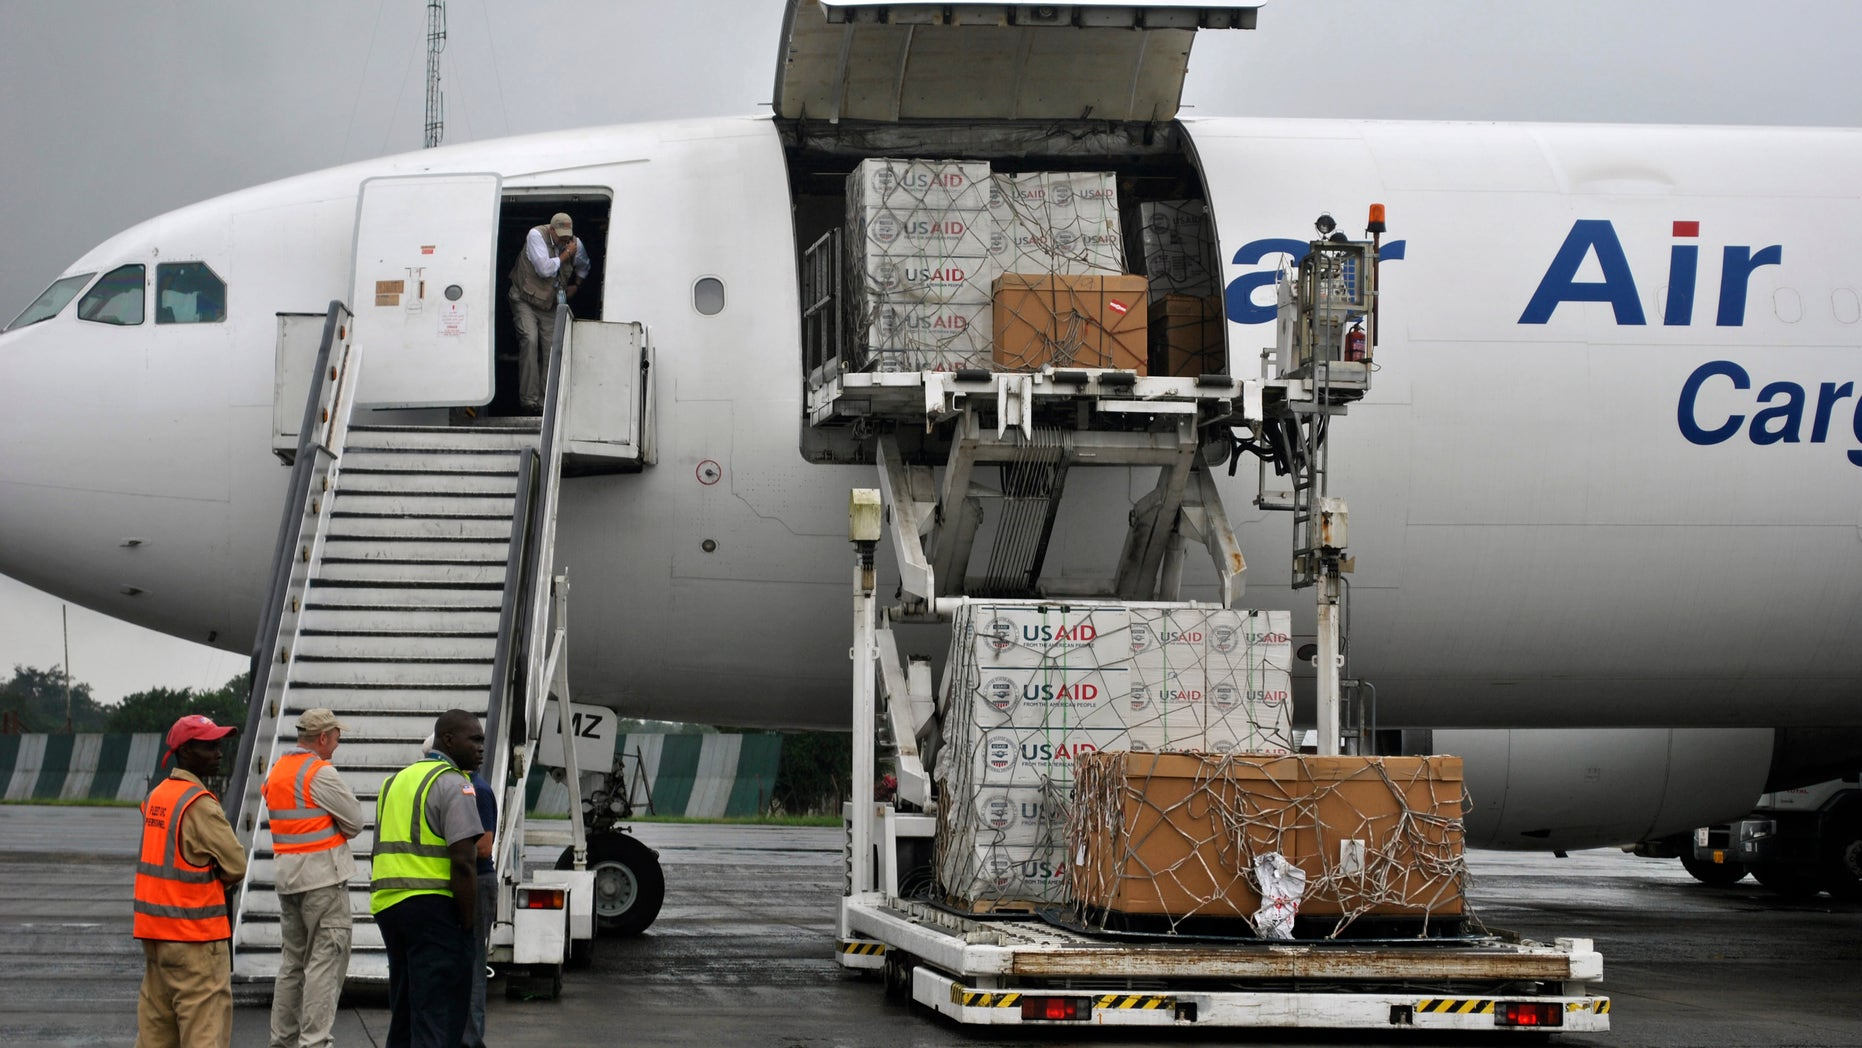 Workers are seen as the first consignment of U.S. Agency for International Development (USAID) medical equipment towards the fight against Ebola is offloaded at the Roberts International Airport in Monrovia, August 24, 2014. REUTERS/James Giahyue